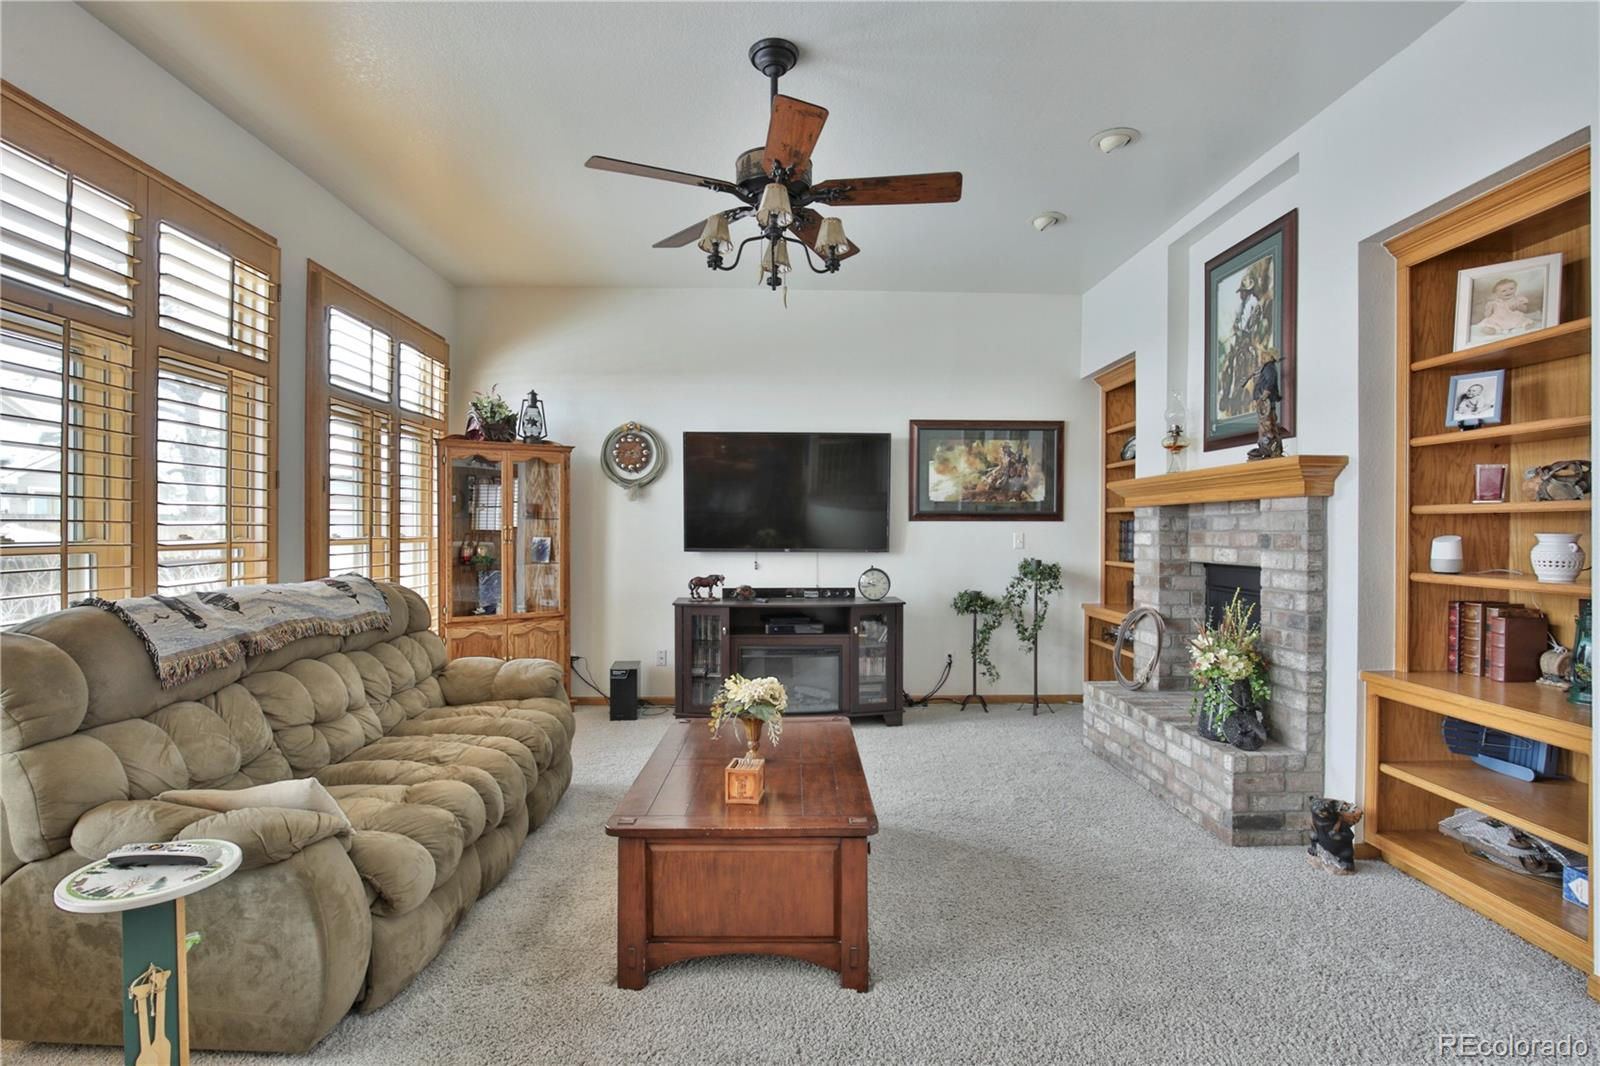 MLS# 5977333 - 10 - 5187 Youngfield Court, Arvada, CO 80002